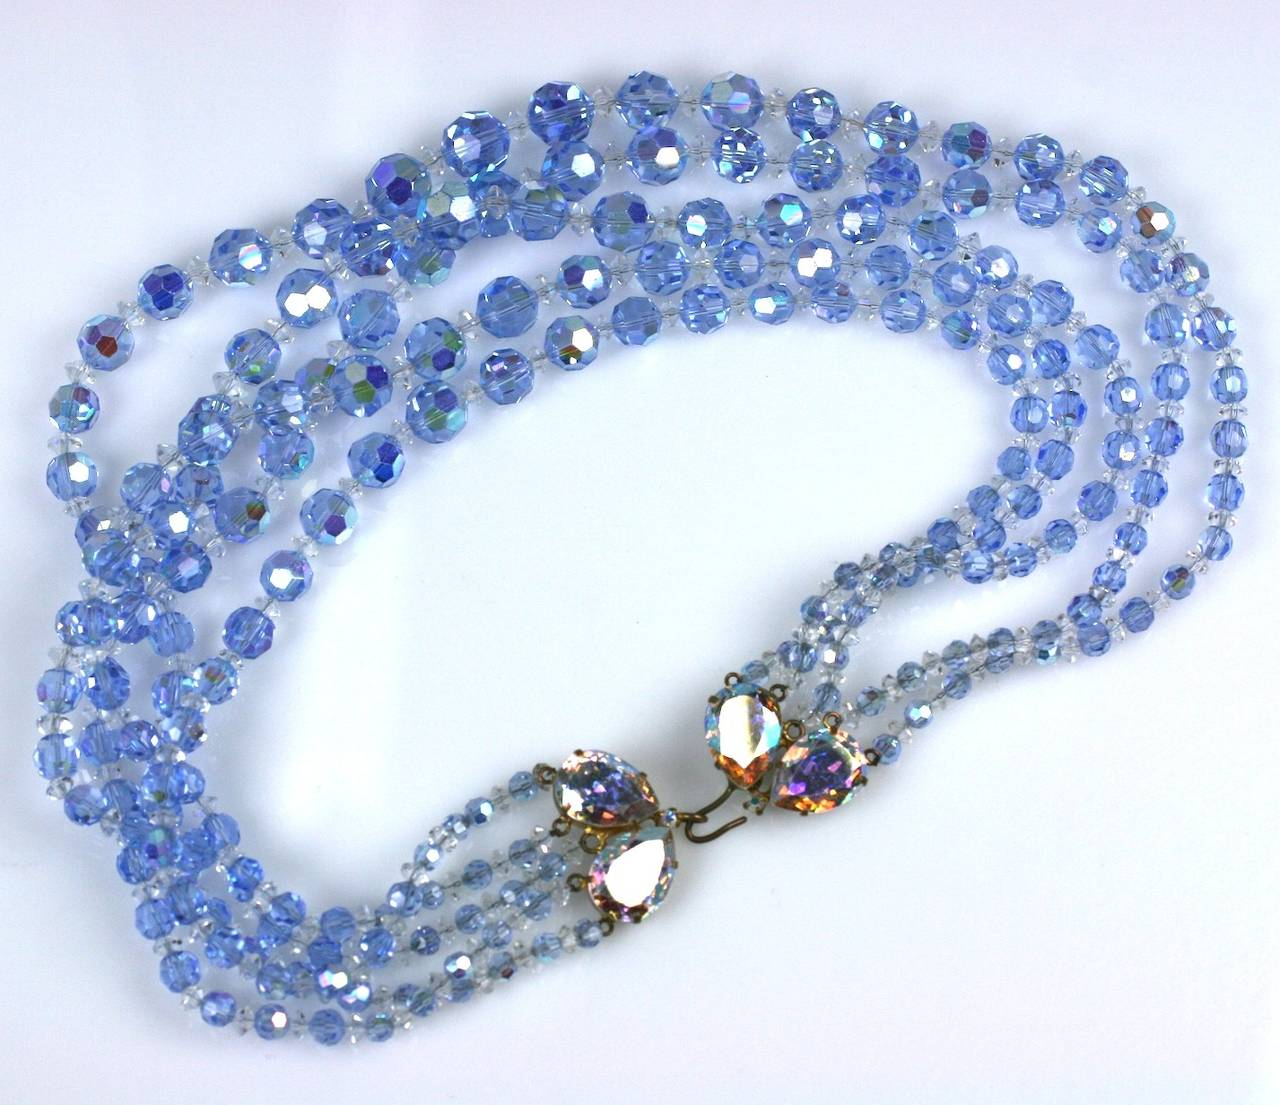 5 Strand pale aqua aurora crystal necklace of graduated beads with large pear shaped Swarovski aurora clasp. 1950's  Austria. Excellent condition. 